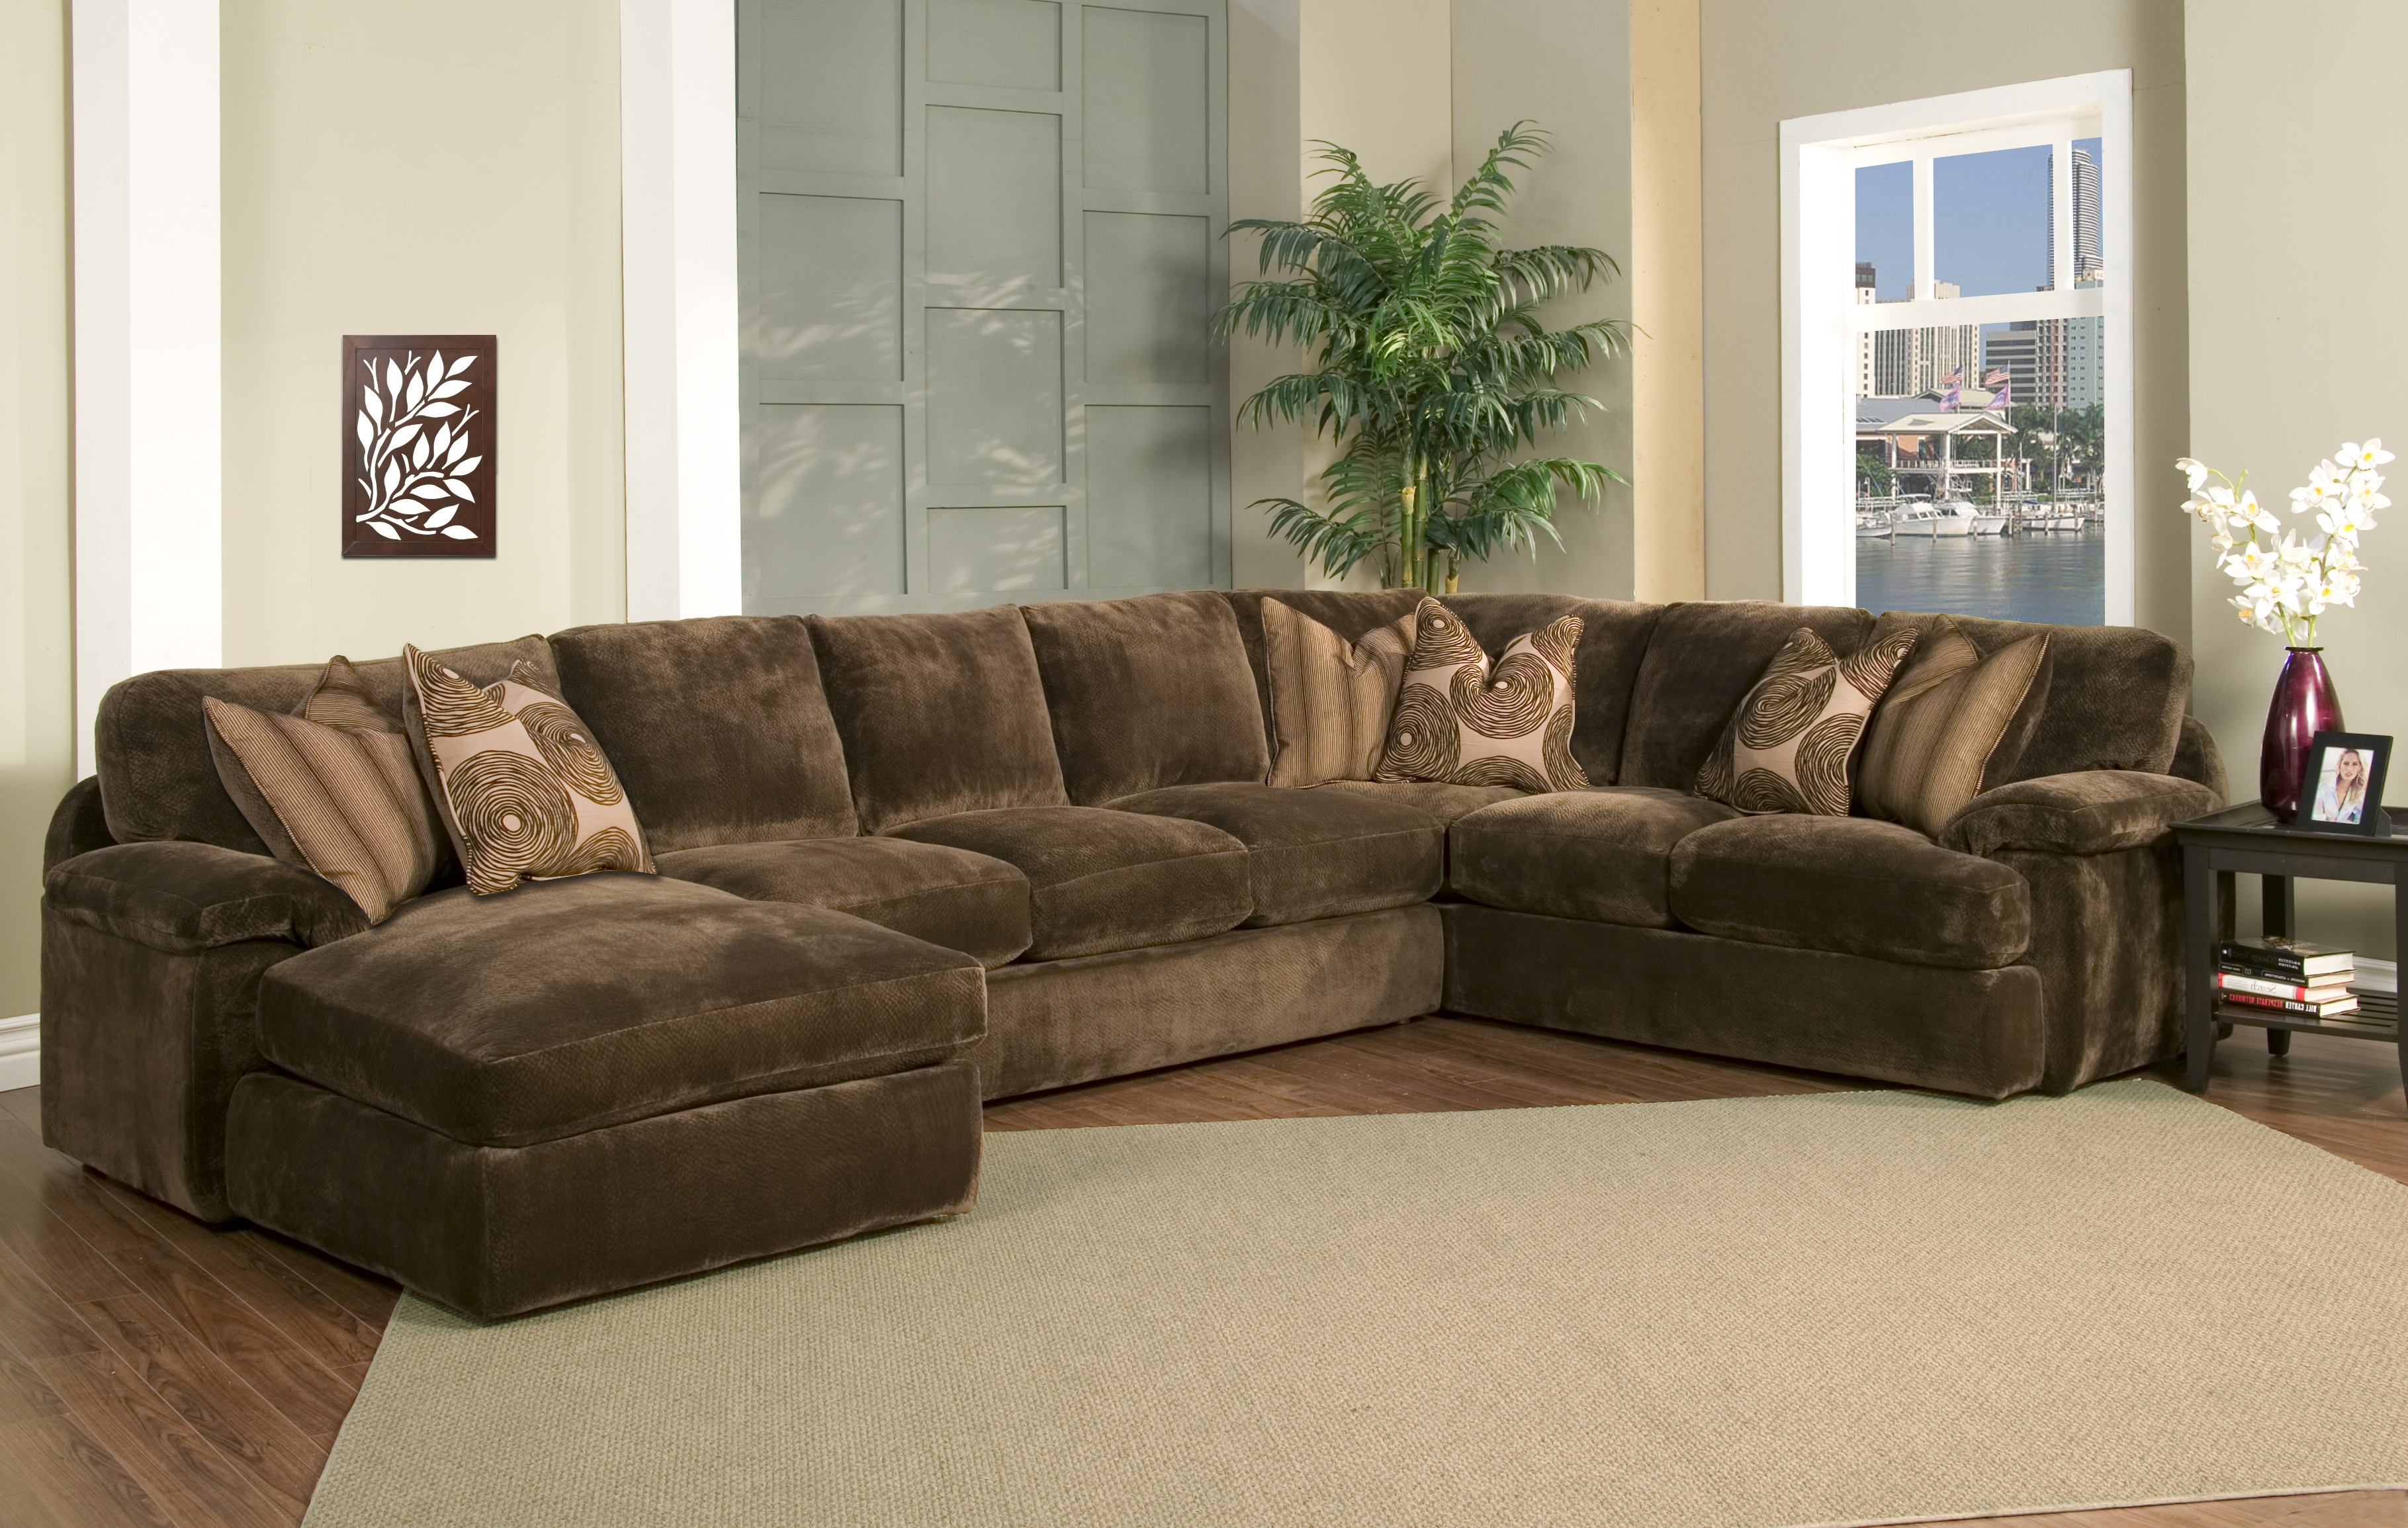 Down Filled Sectional Sofas Inside Well Known Furniture: Sofas With Down Cushions (View 6 of 15)